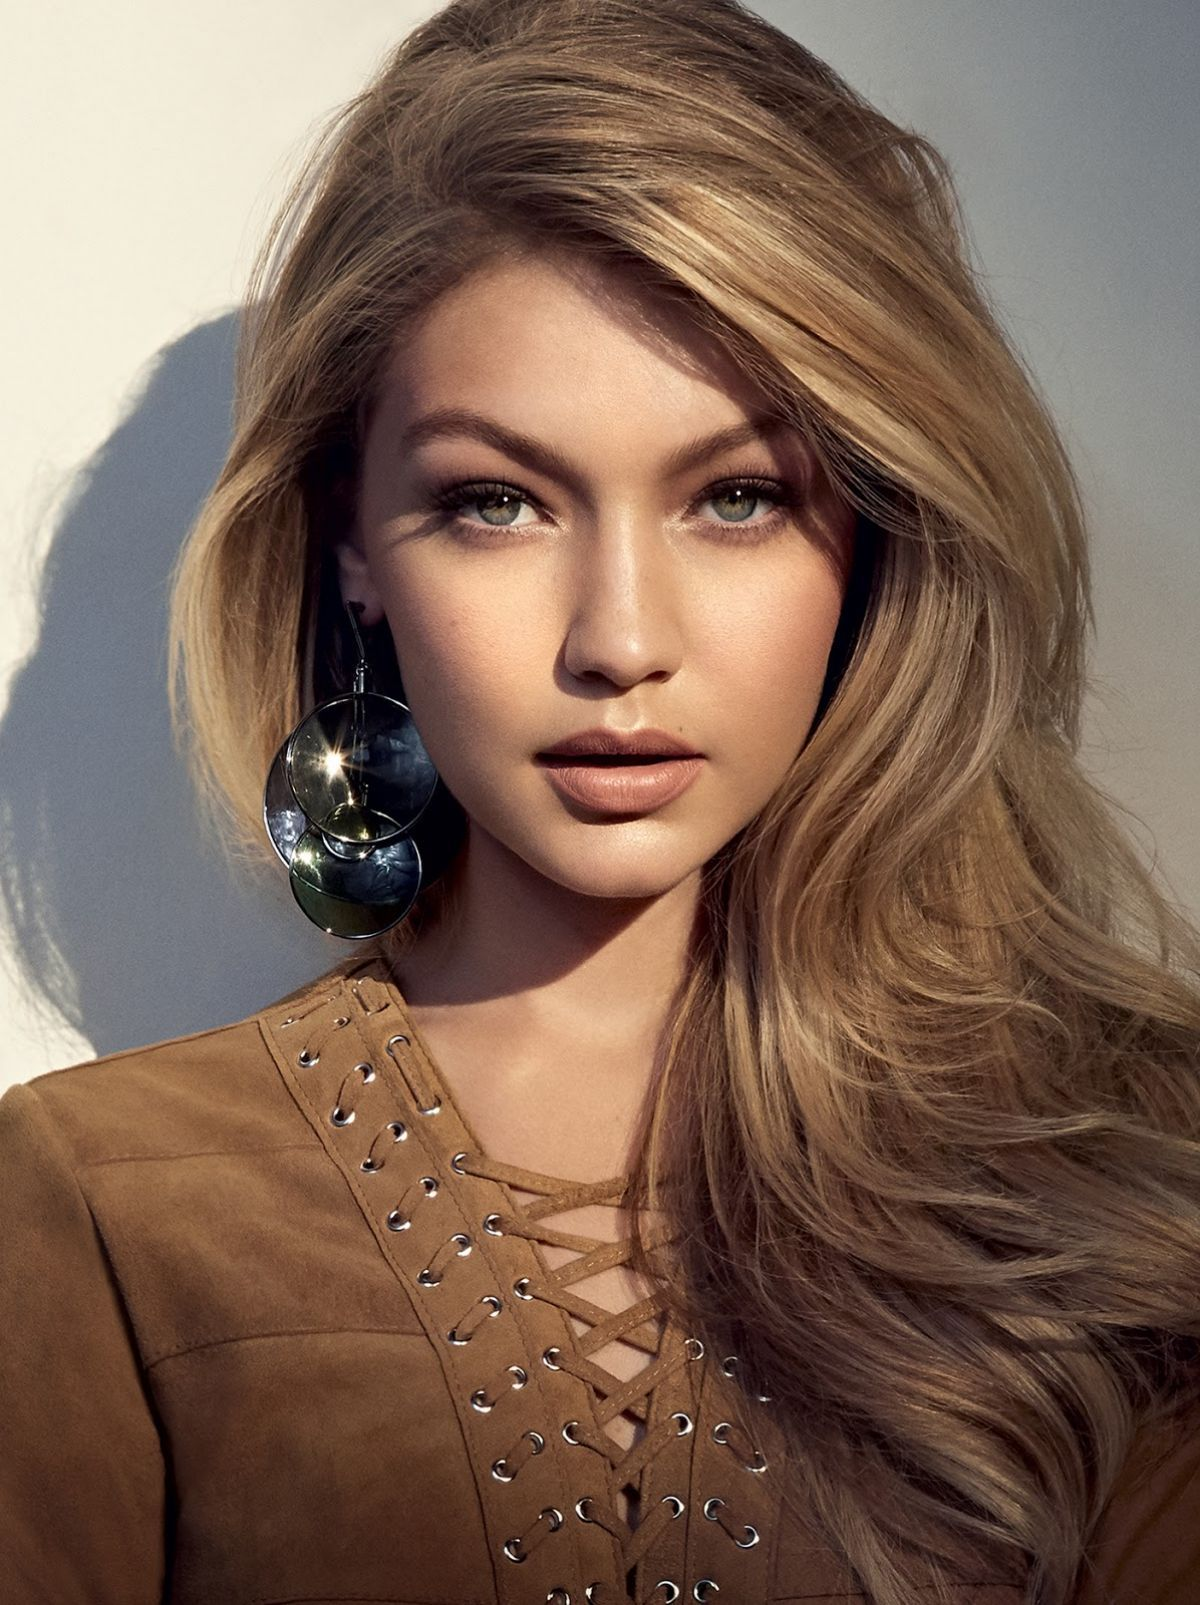 Brondeone Of The Hottest Hair Color Trends In 2016 Cheap Human